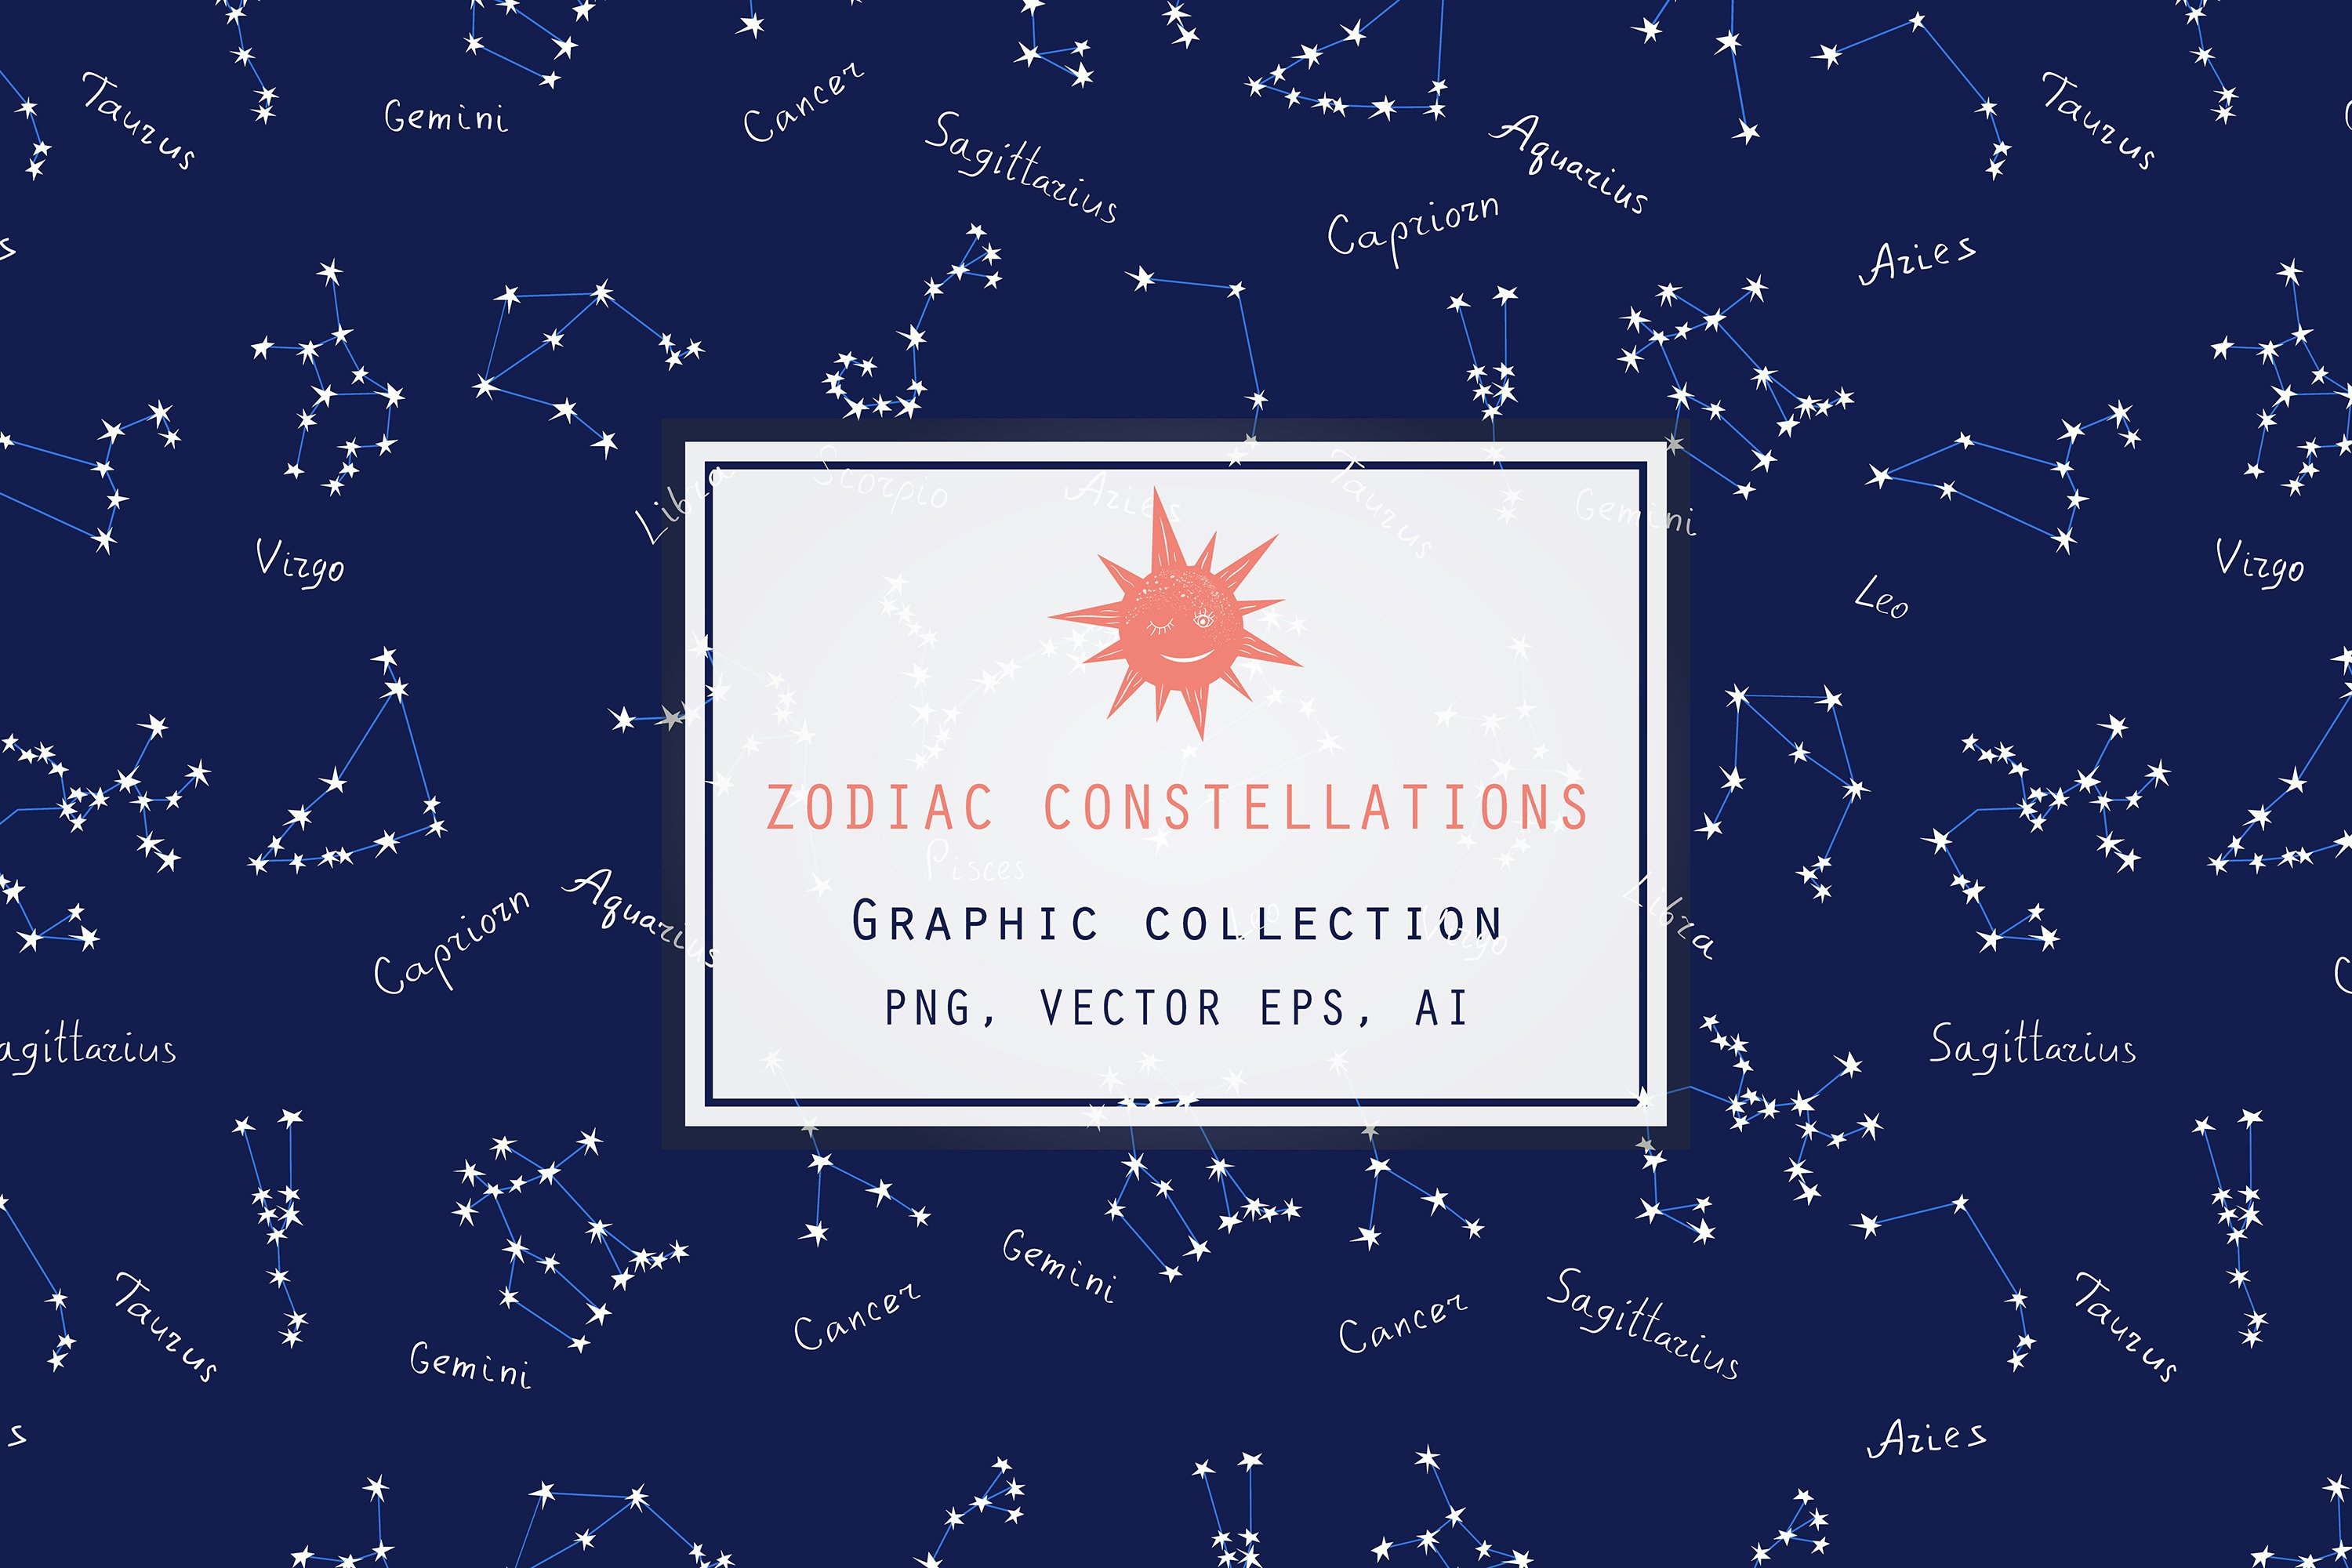 Zodiac constellations - Graphic collection example image 1